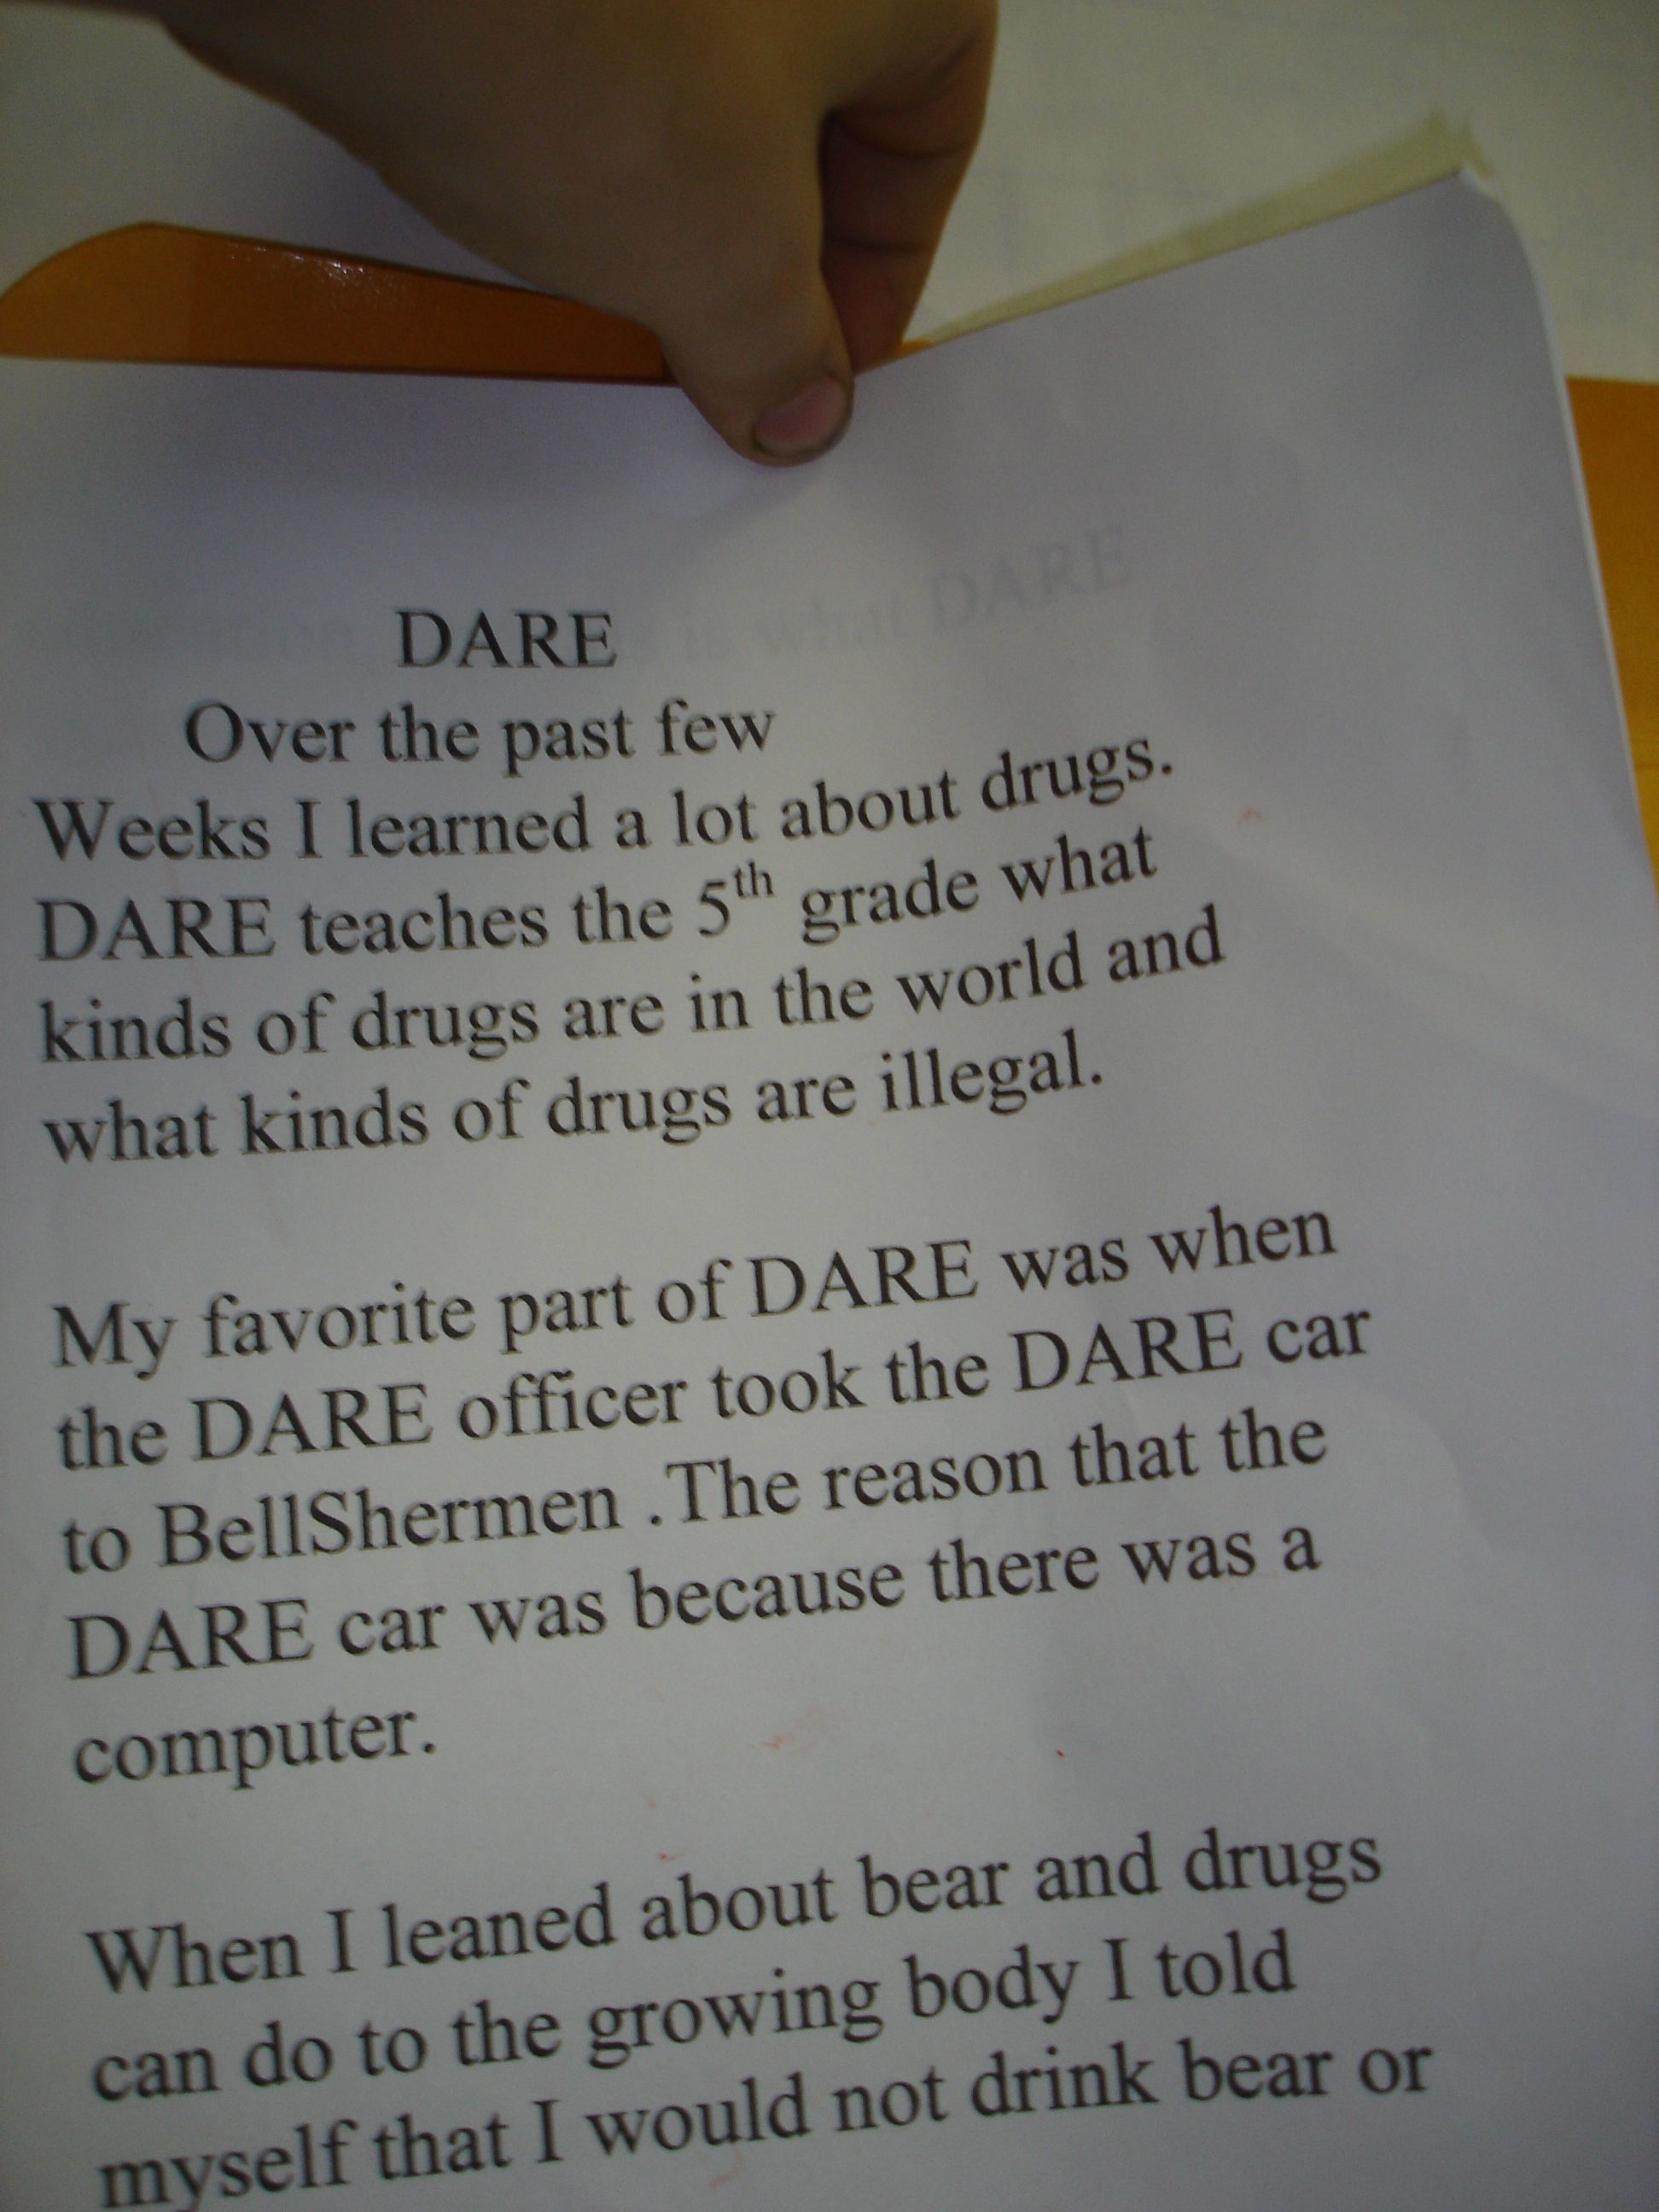 d.a.r.e. essay award It is the policy of the clarke county school district not to discriminate on the basis of age, sex, race, color, religion, national origin, marital status, disability or any other legally.